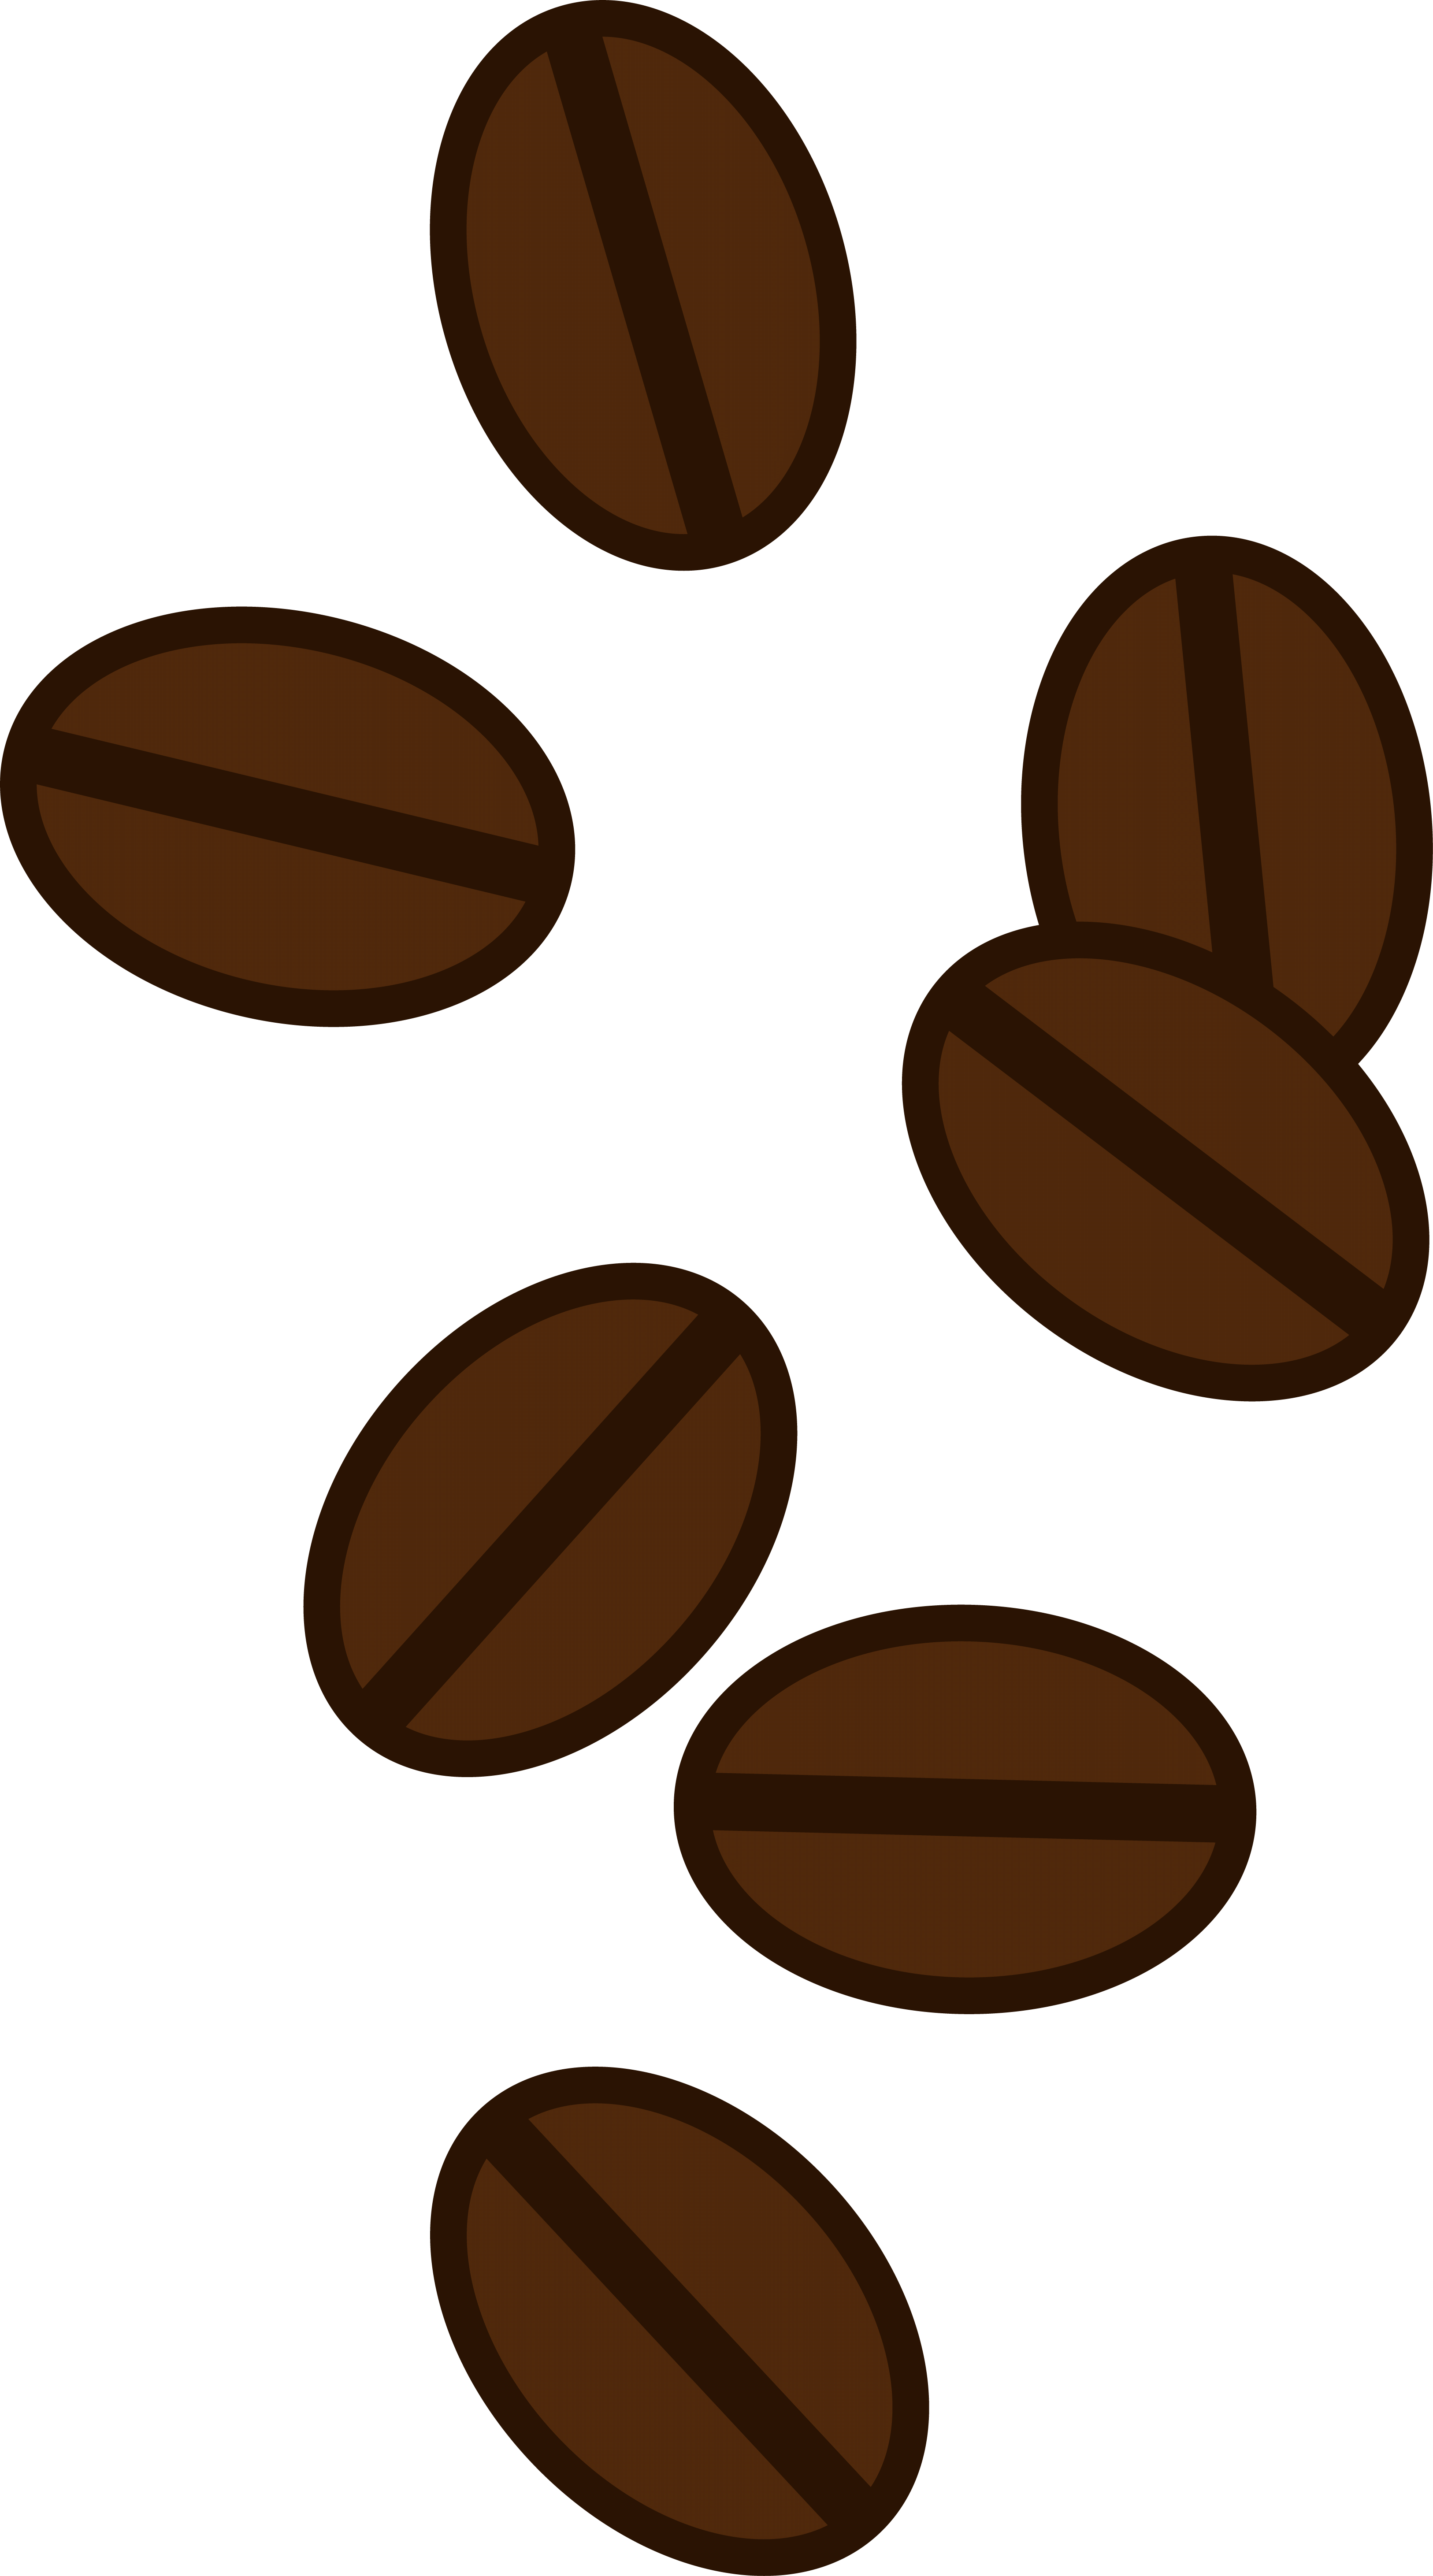 Coffee clipart coffee bar. Bean graphic image group